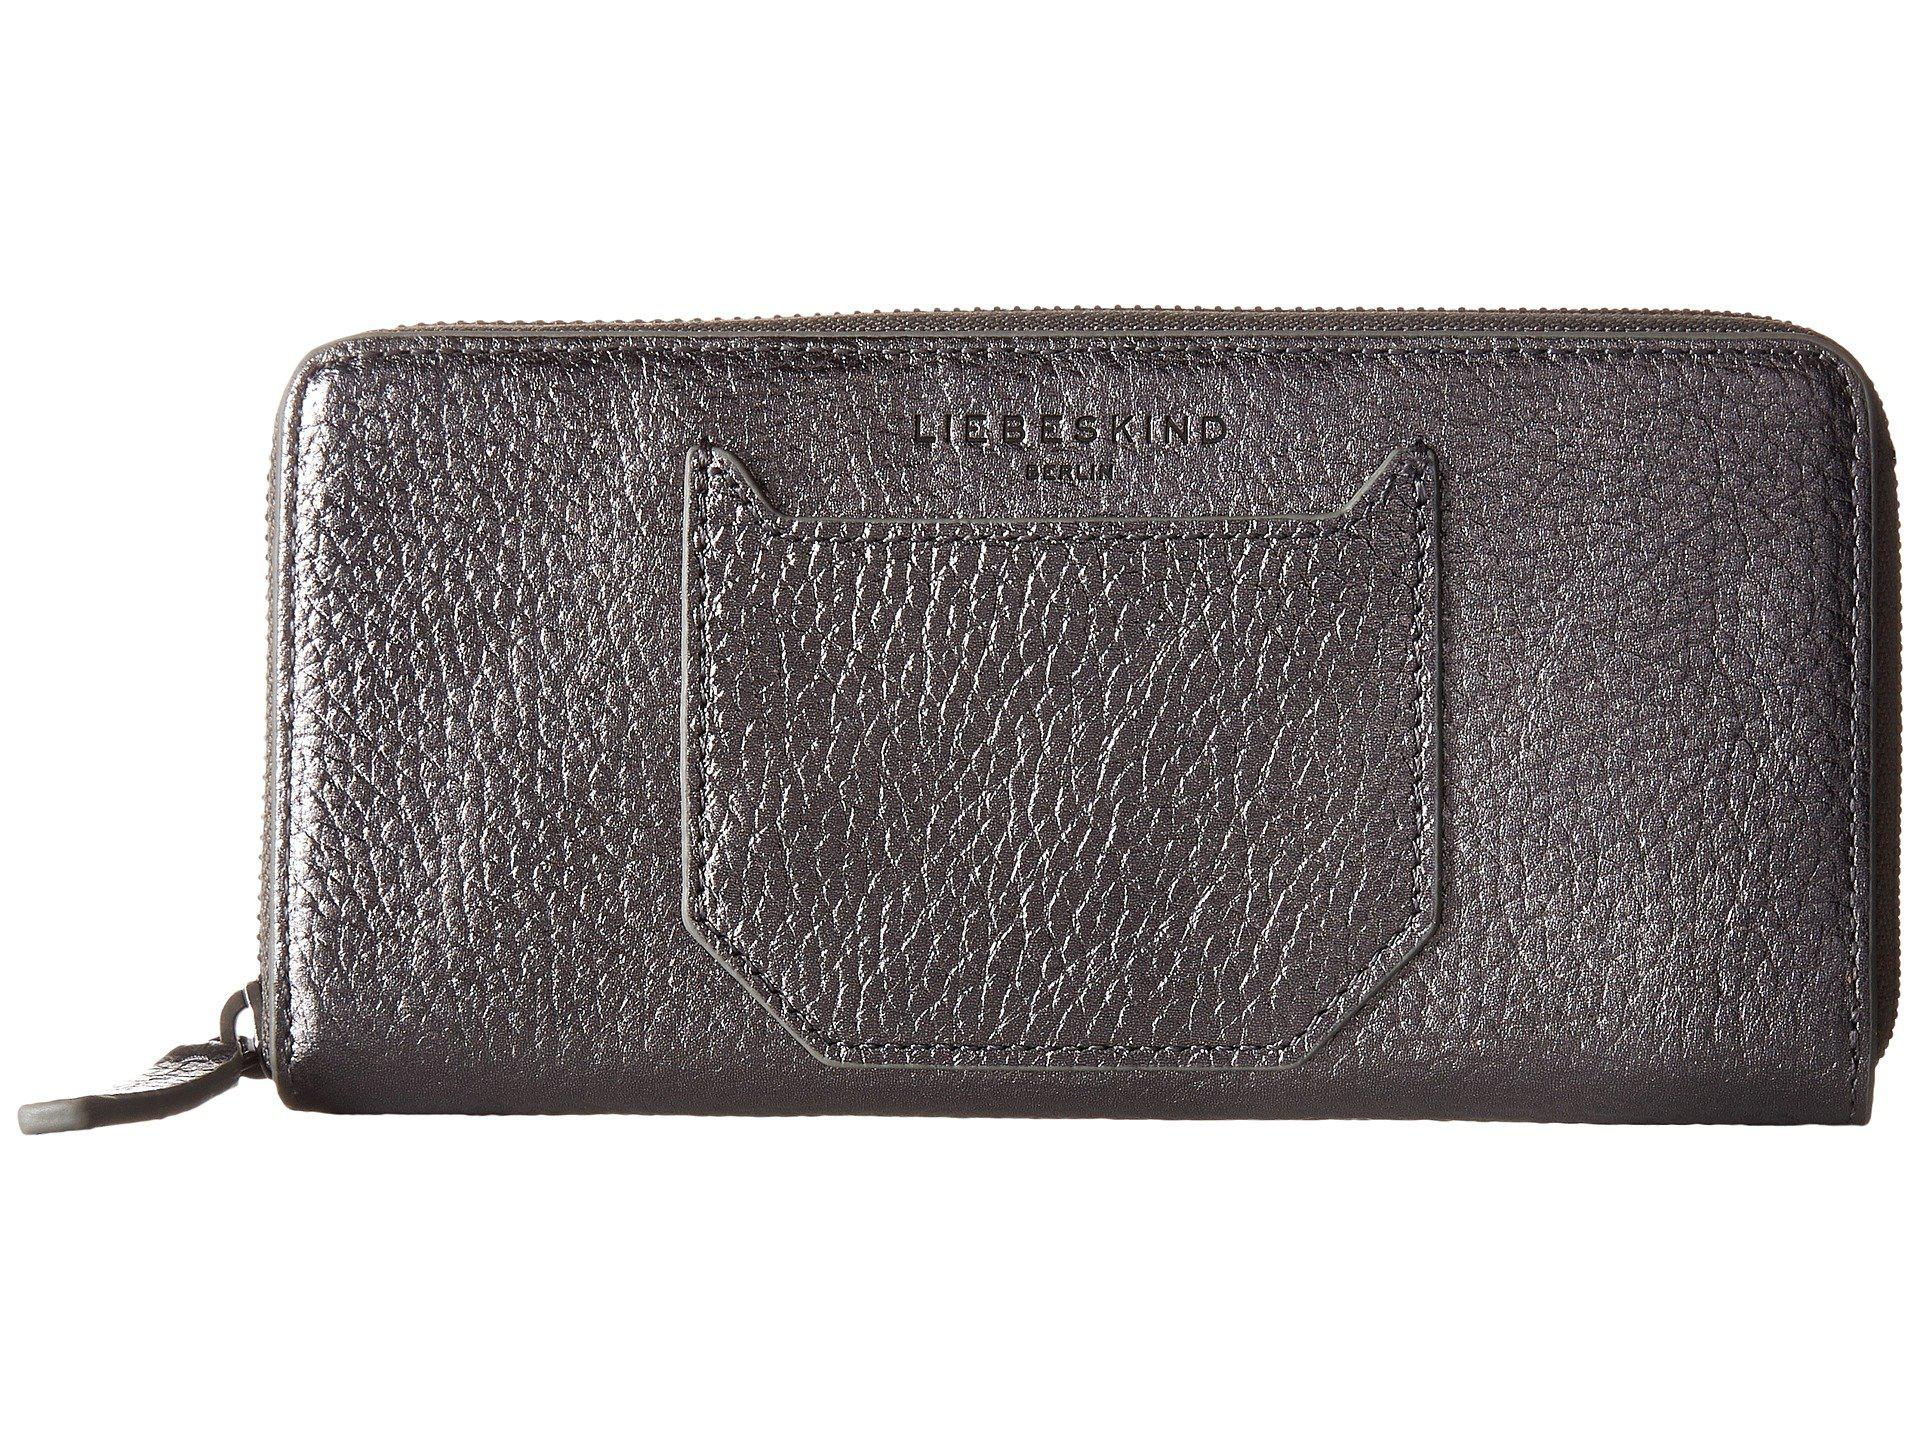 Womens Gigih7 Wallet Liebeskind Clearance Manchester Great Sale Cheap Sale Best Deals For Sale Clearance Cheapest 4zXXNE8